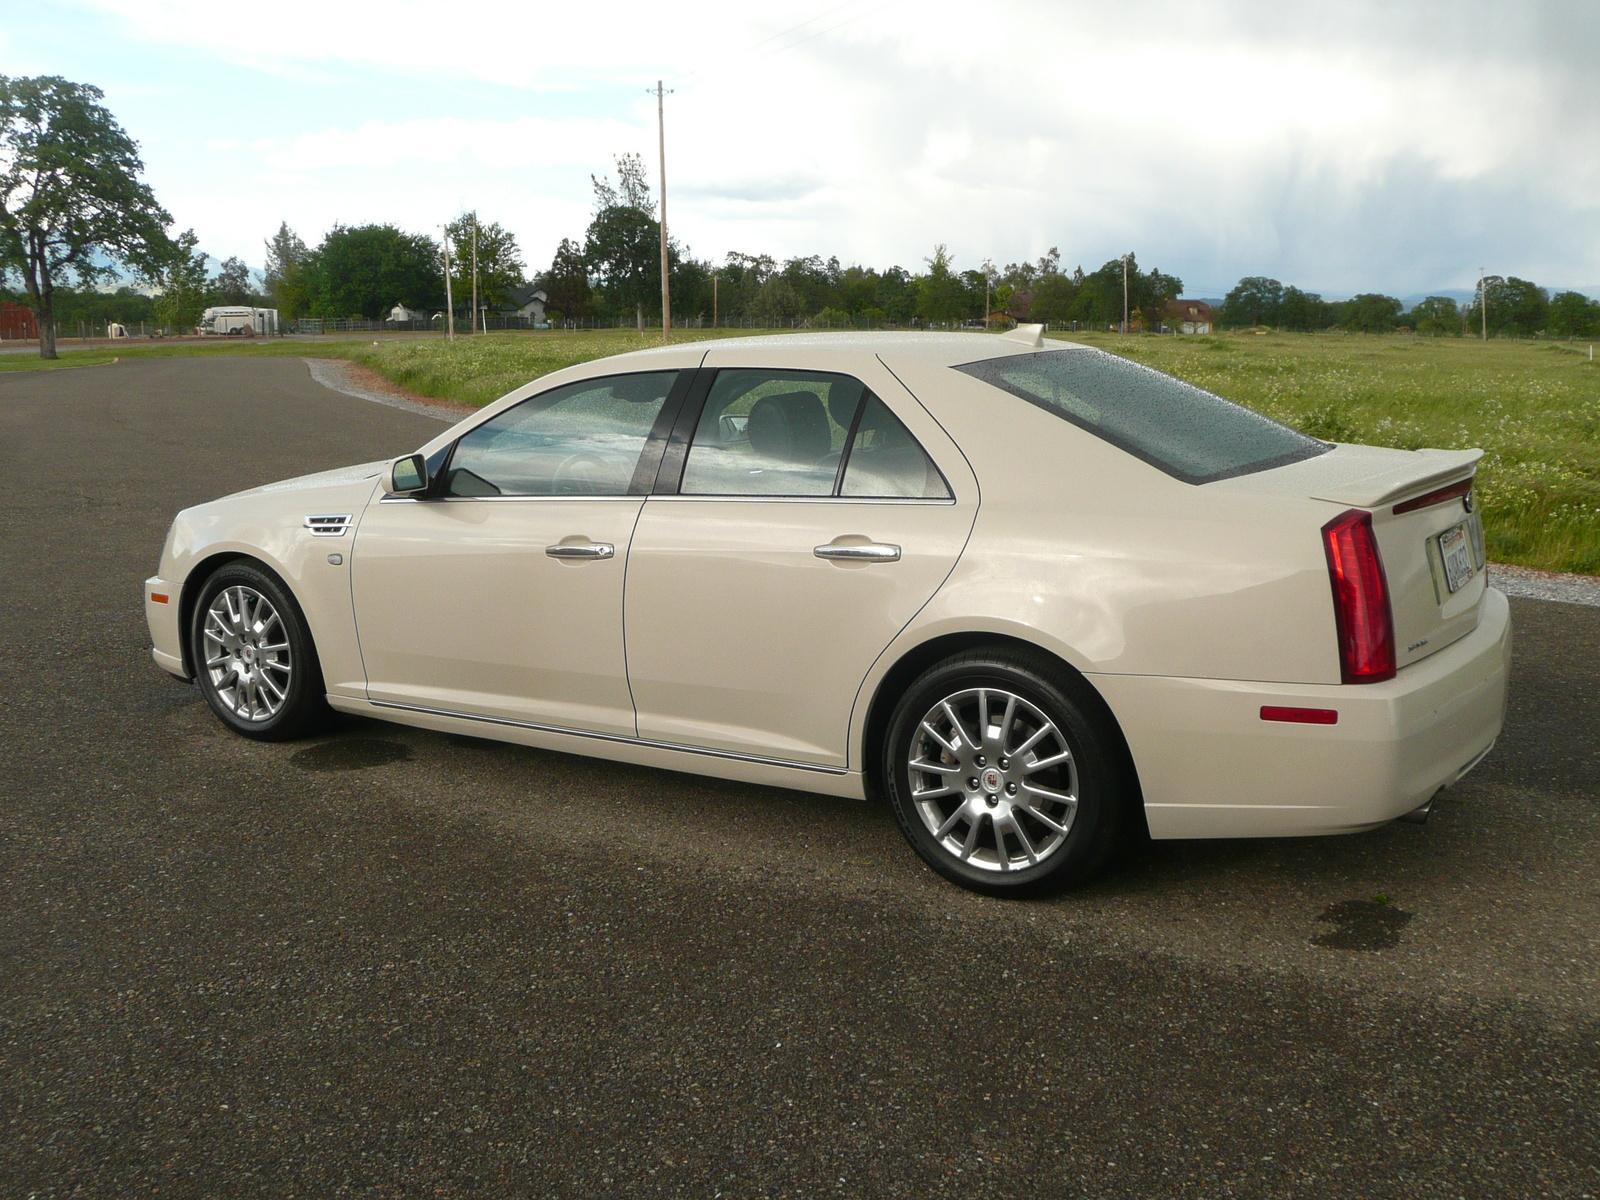 Cadillac Sts Premium Pic furthermore Original in addition Cadillac Escalade Interior in addition Roadtests Z Cadillac Cts Sedan Dash additionally Bcm. on 2005 cadillac sts interior